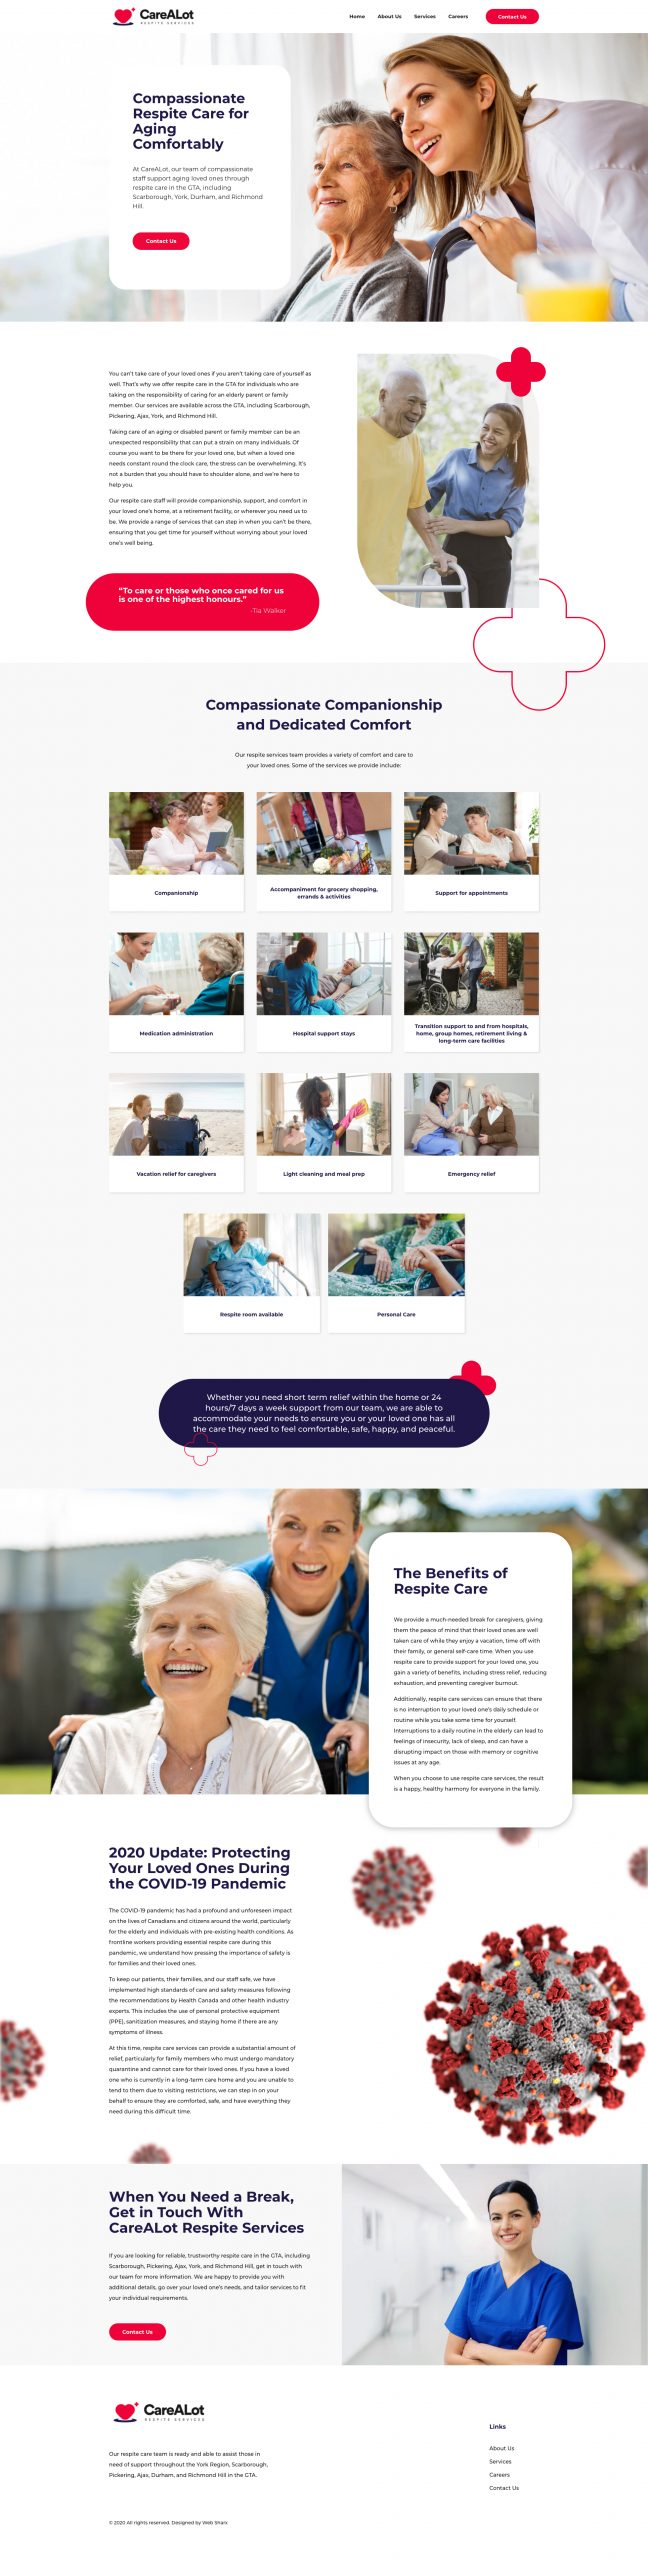 toronto respite services and care web design